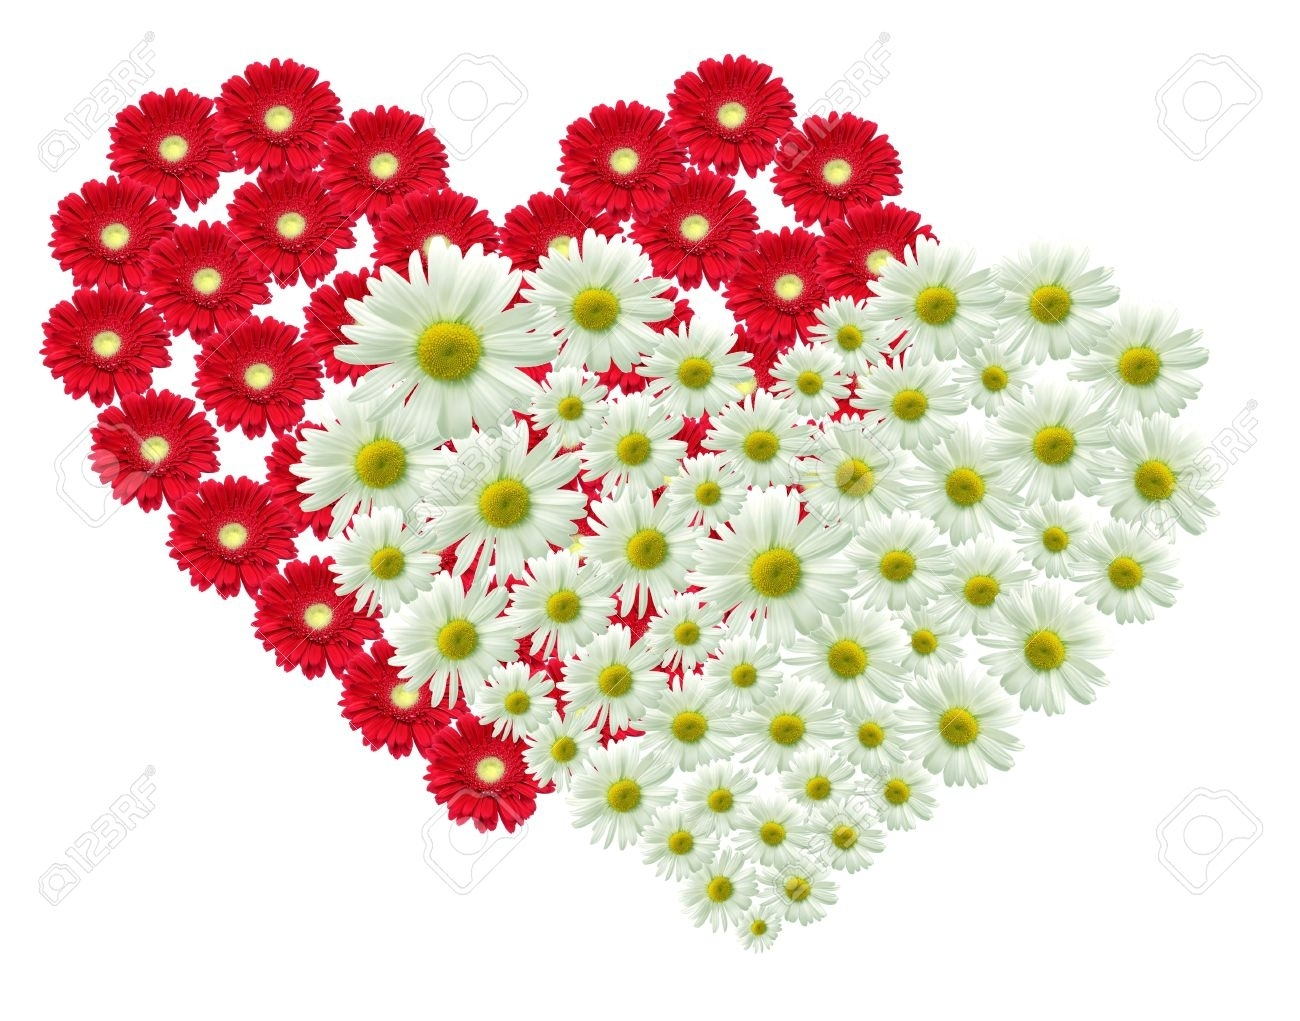 2 big heart made of red and white flowers stock photo, picture and